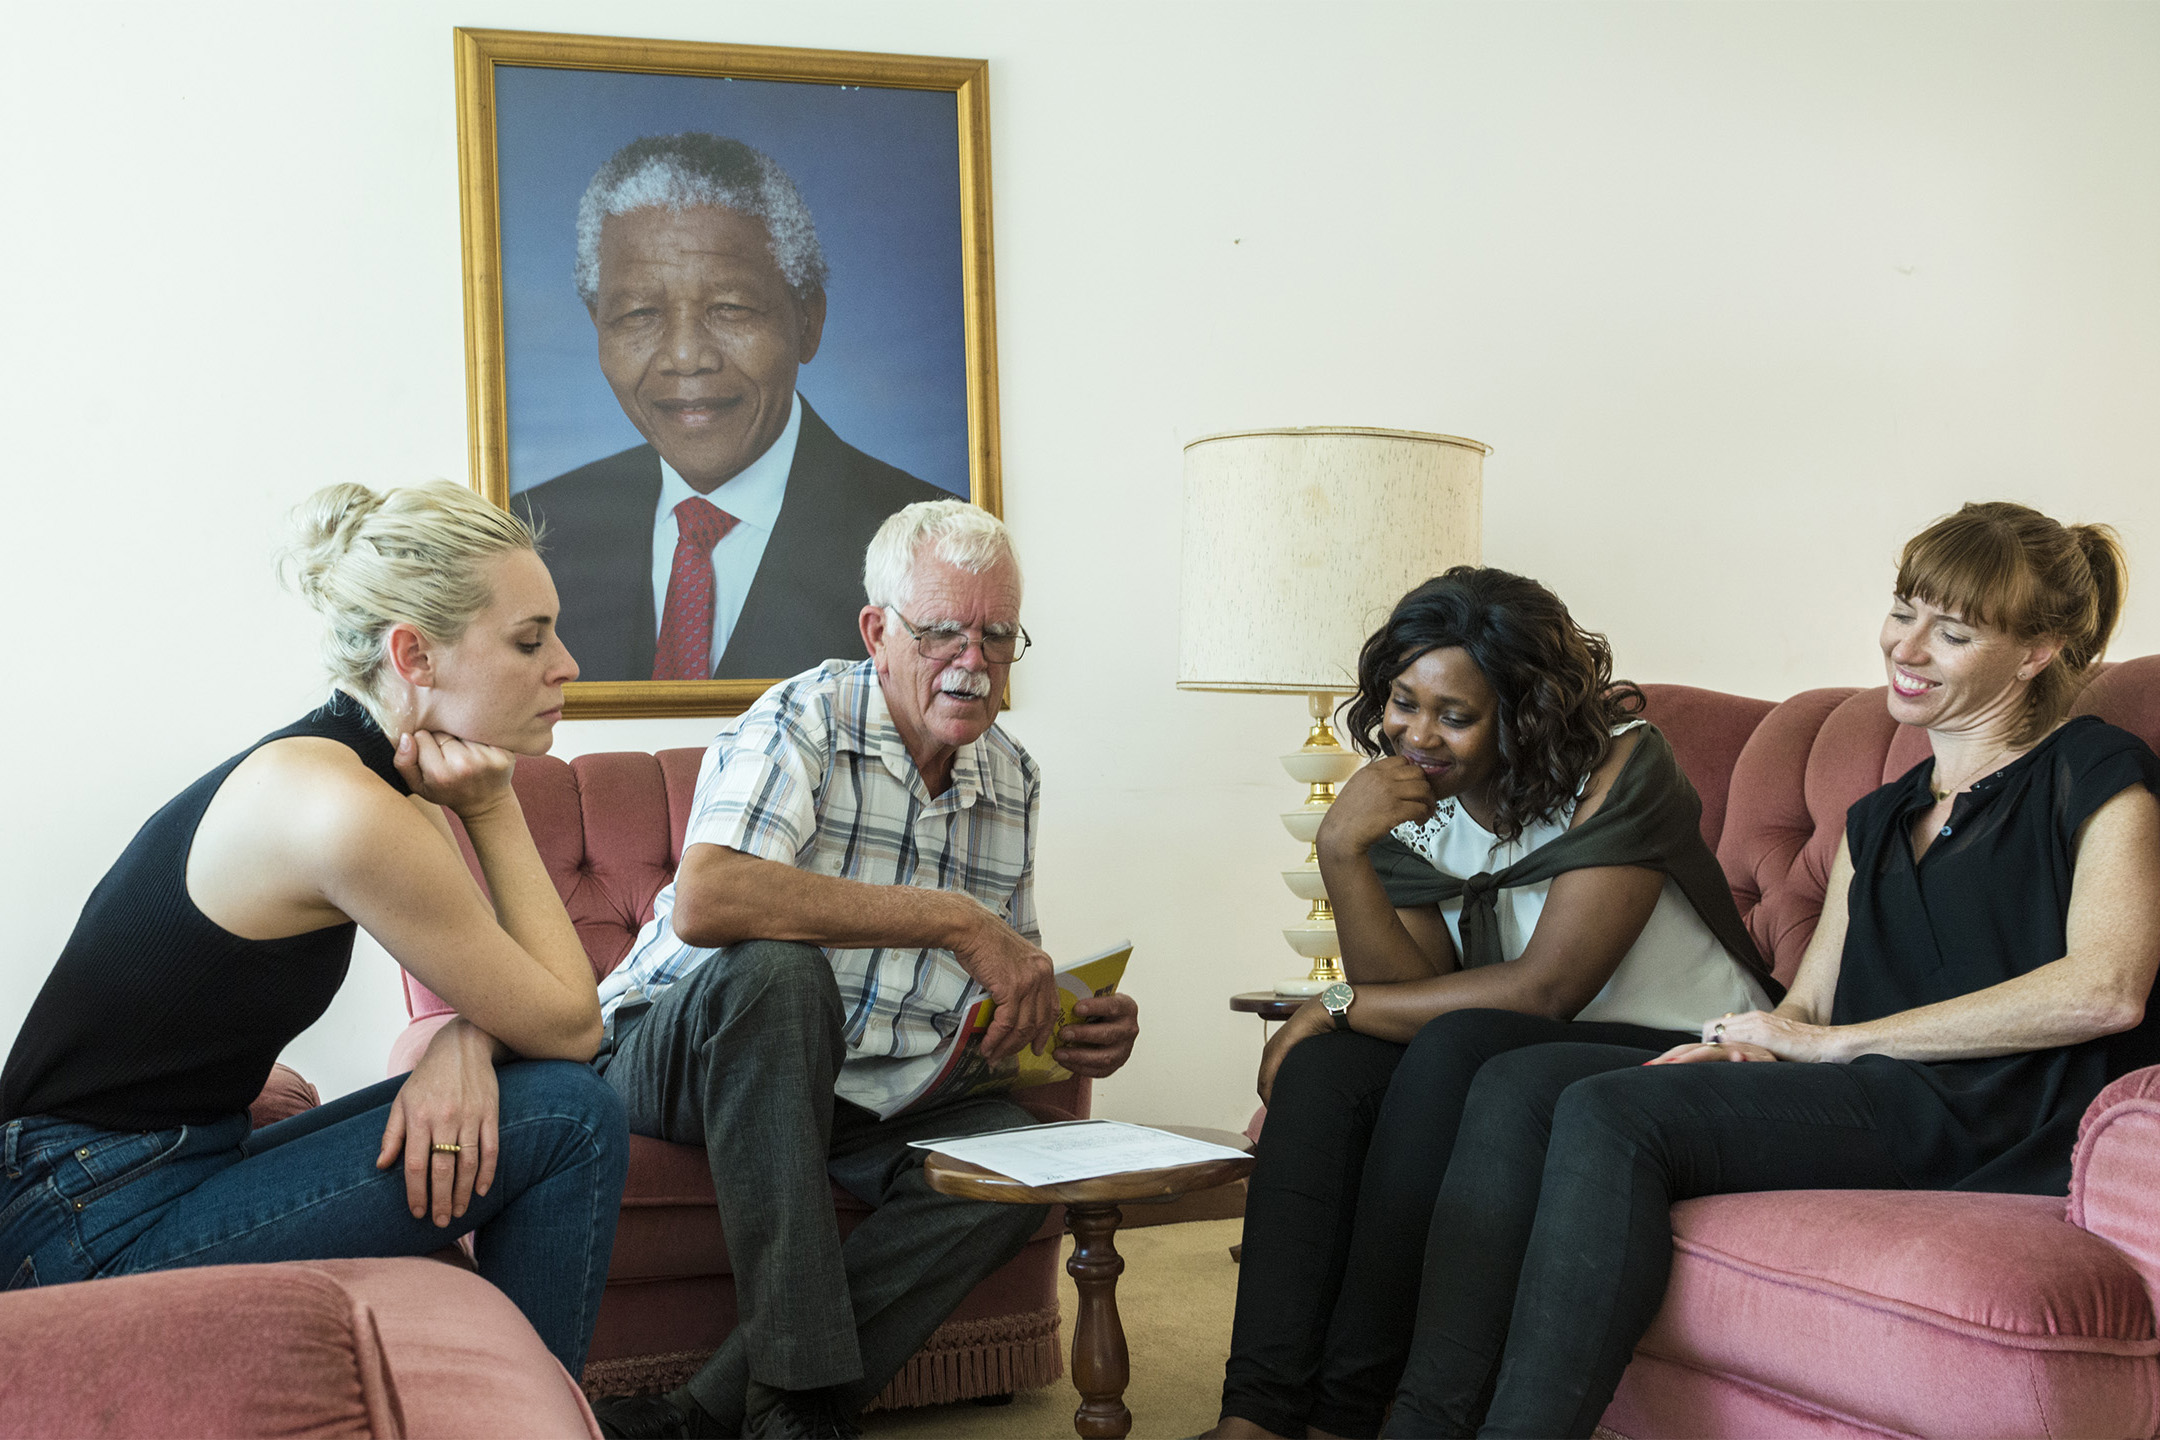 67 Minutes to Honor Nelson Mandela's Legacy